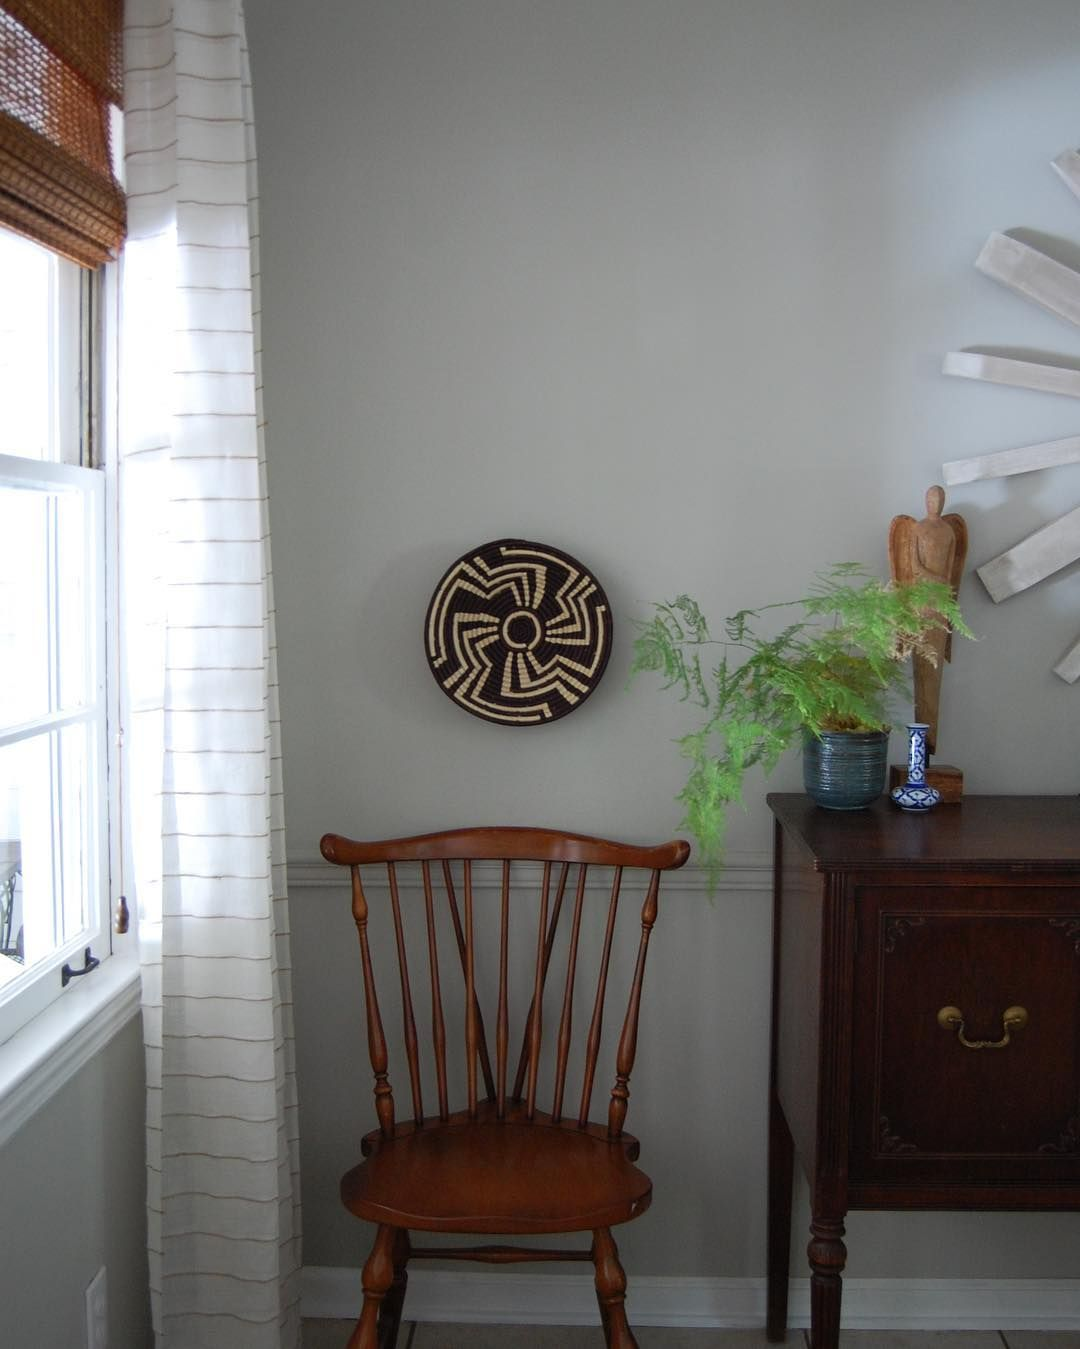 Eclectic Traditional Dining Room Decor With African Basket And Fern